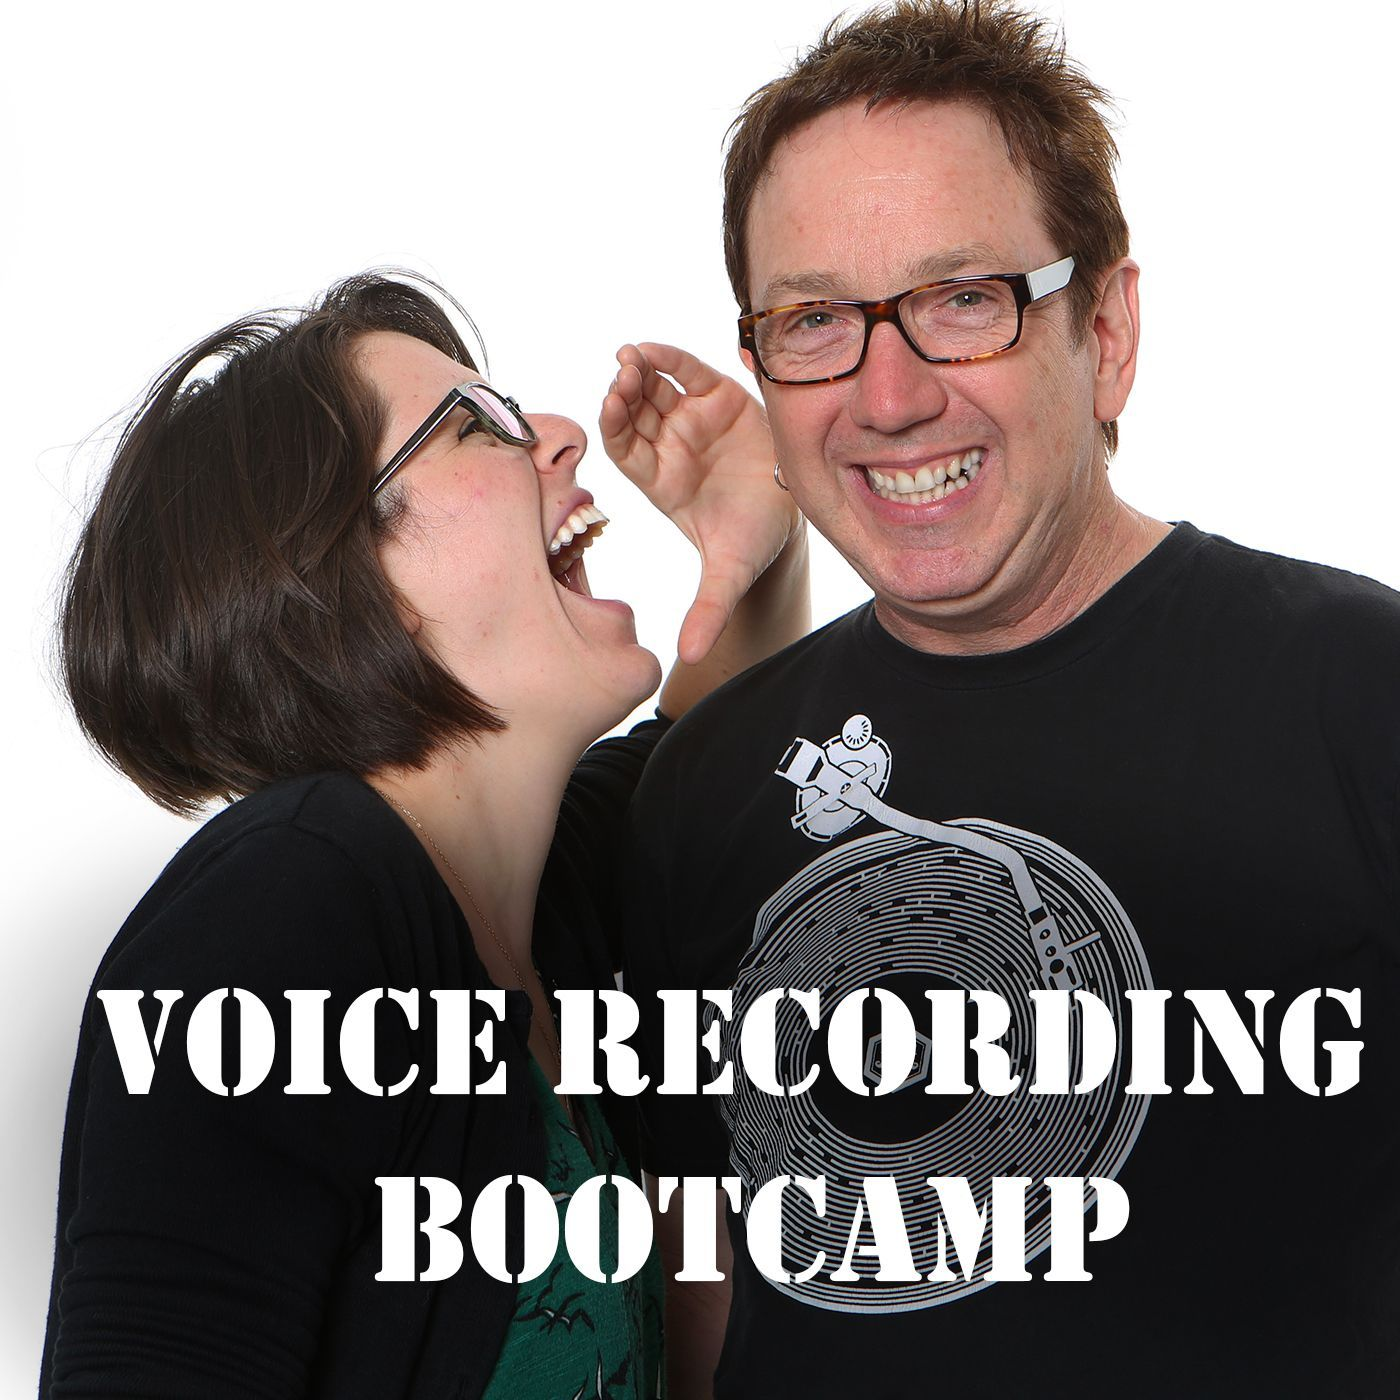 Ep 002- Welcome to the Voice Recording Bootcamp!